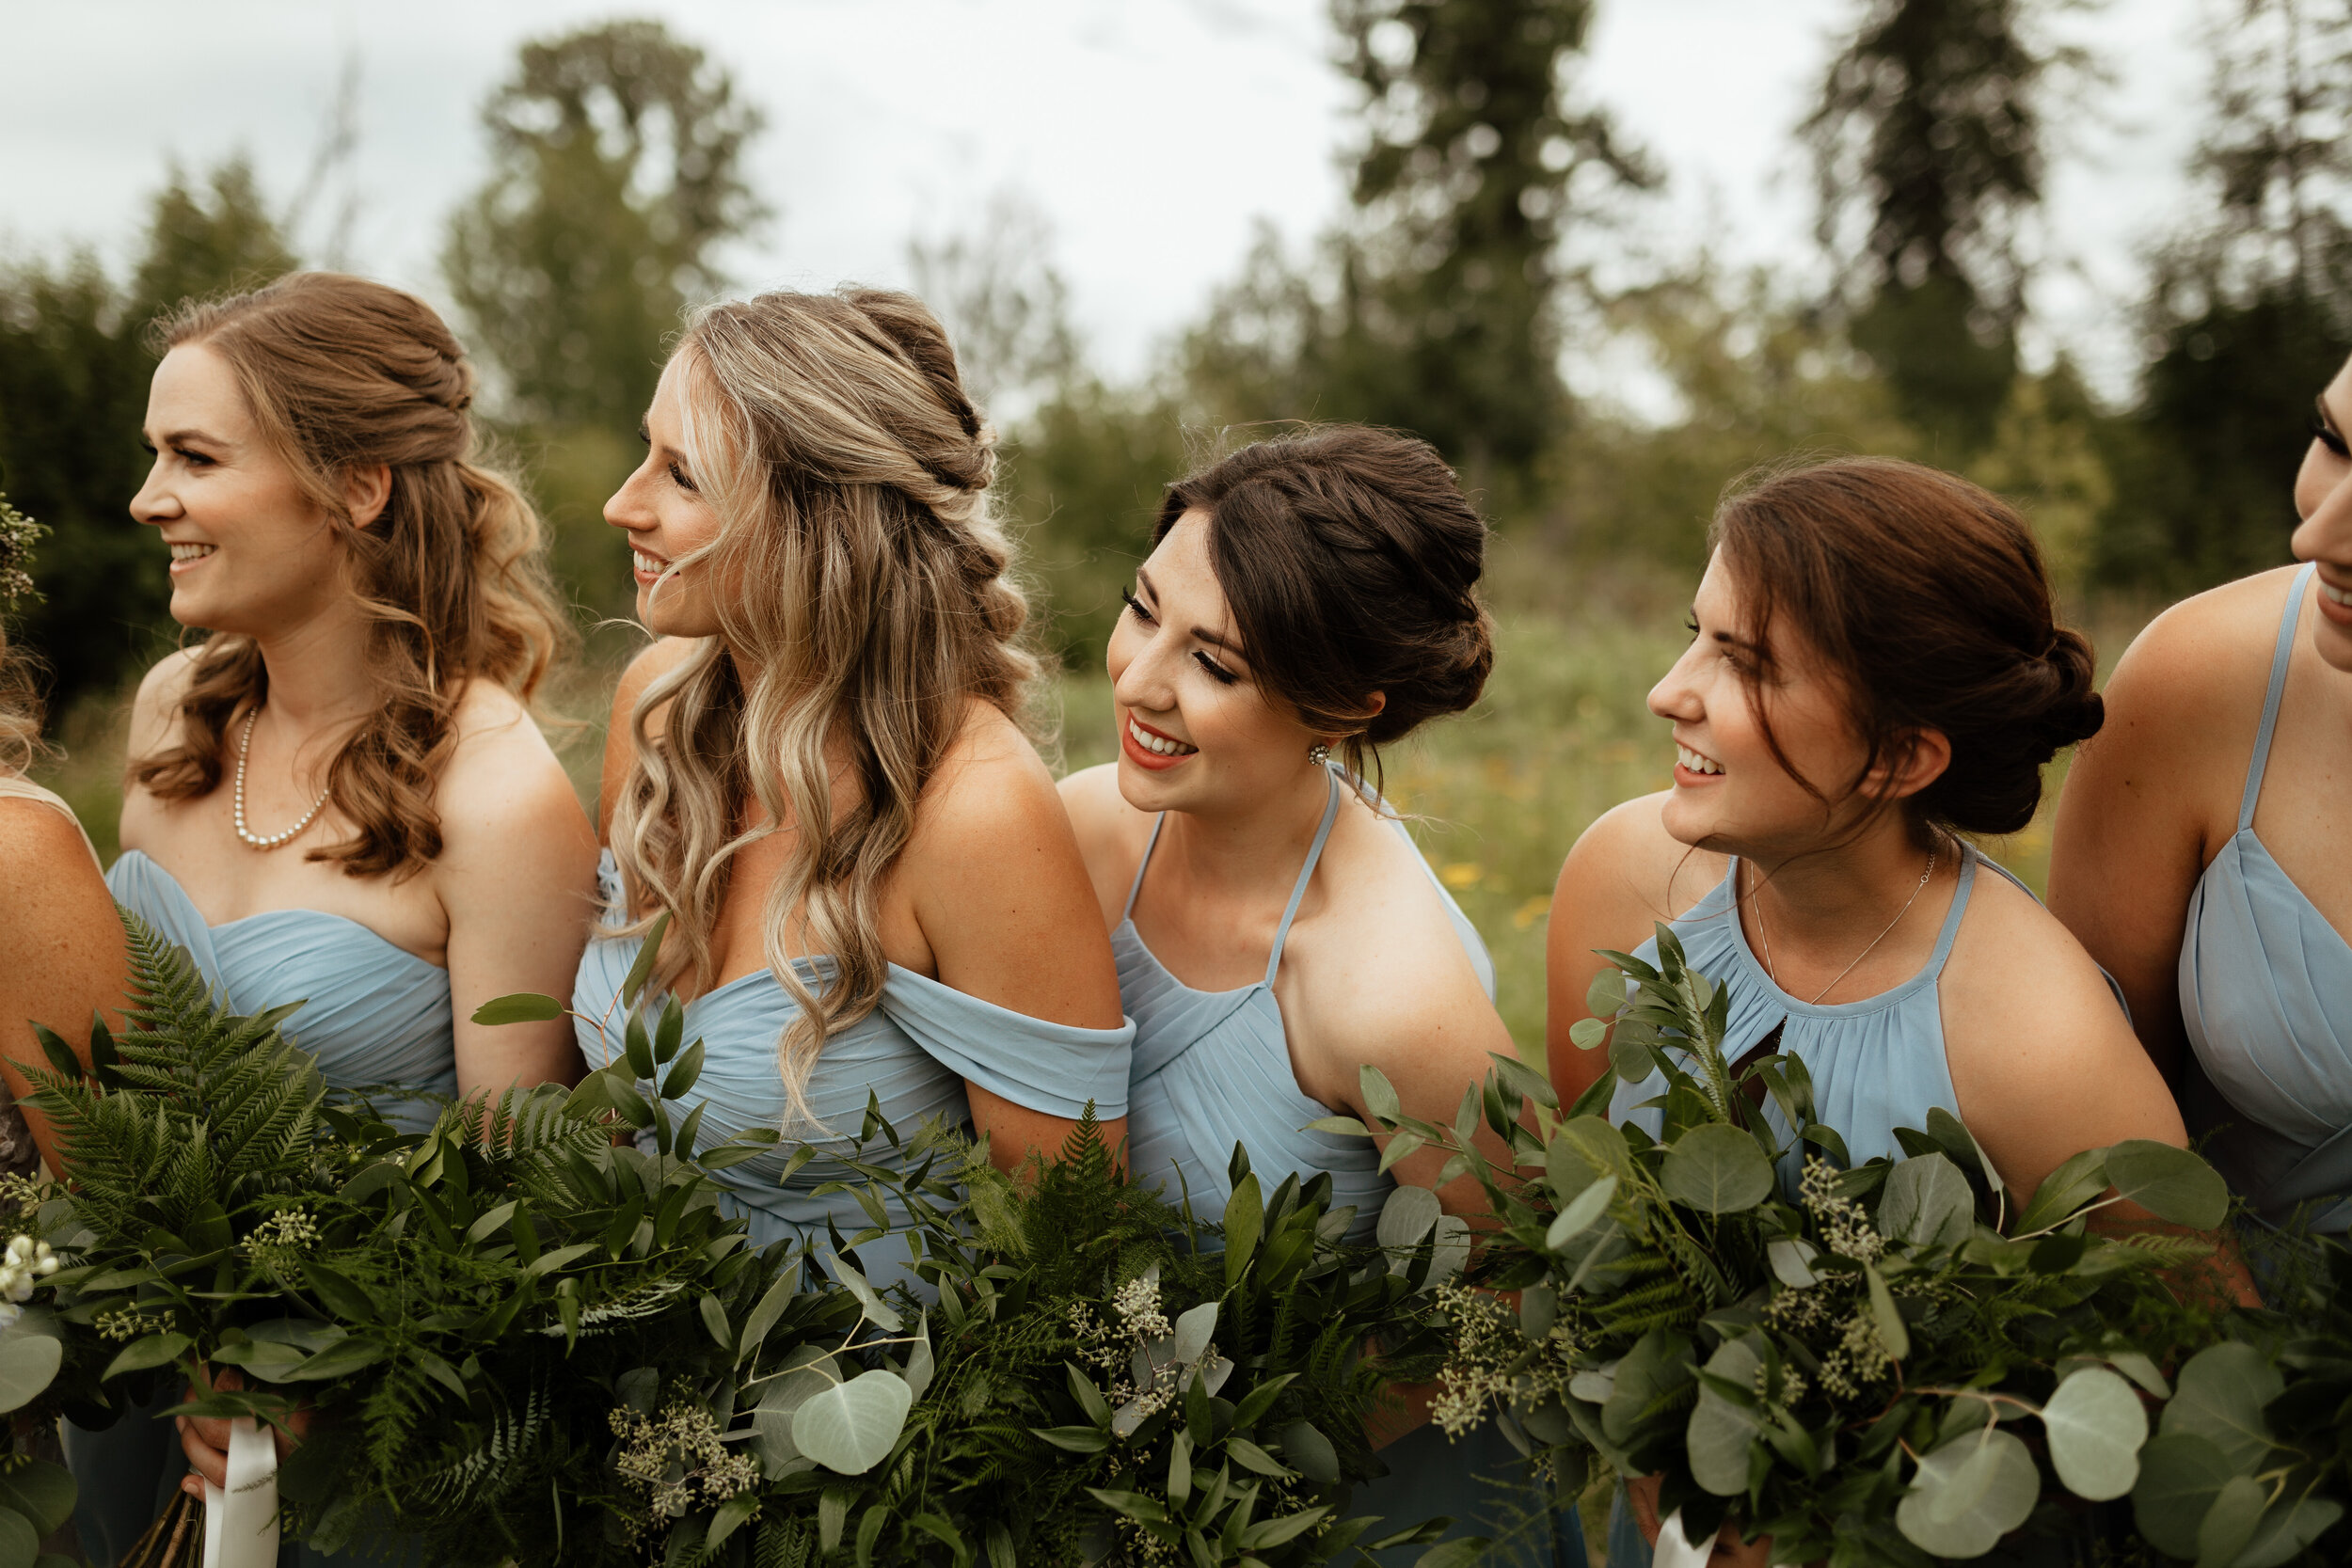 Matt + Jordanne 4 - Bridal Party Portraits-23.jpg